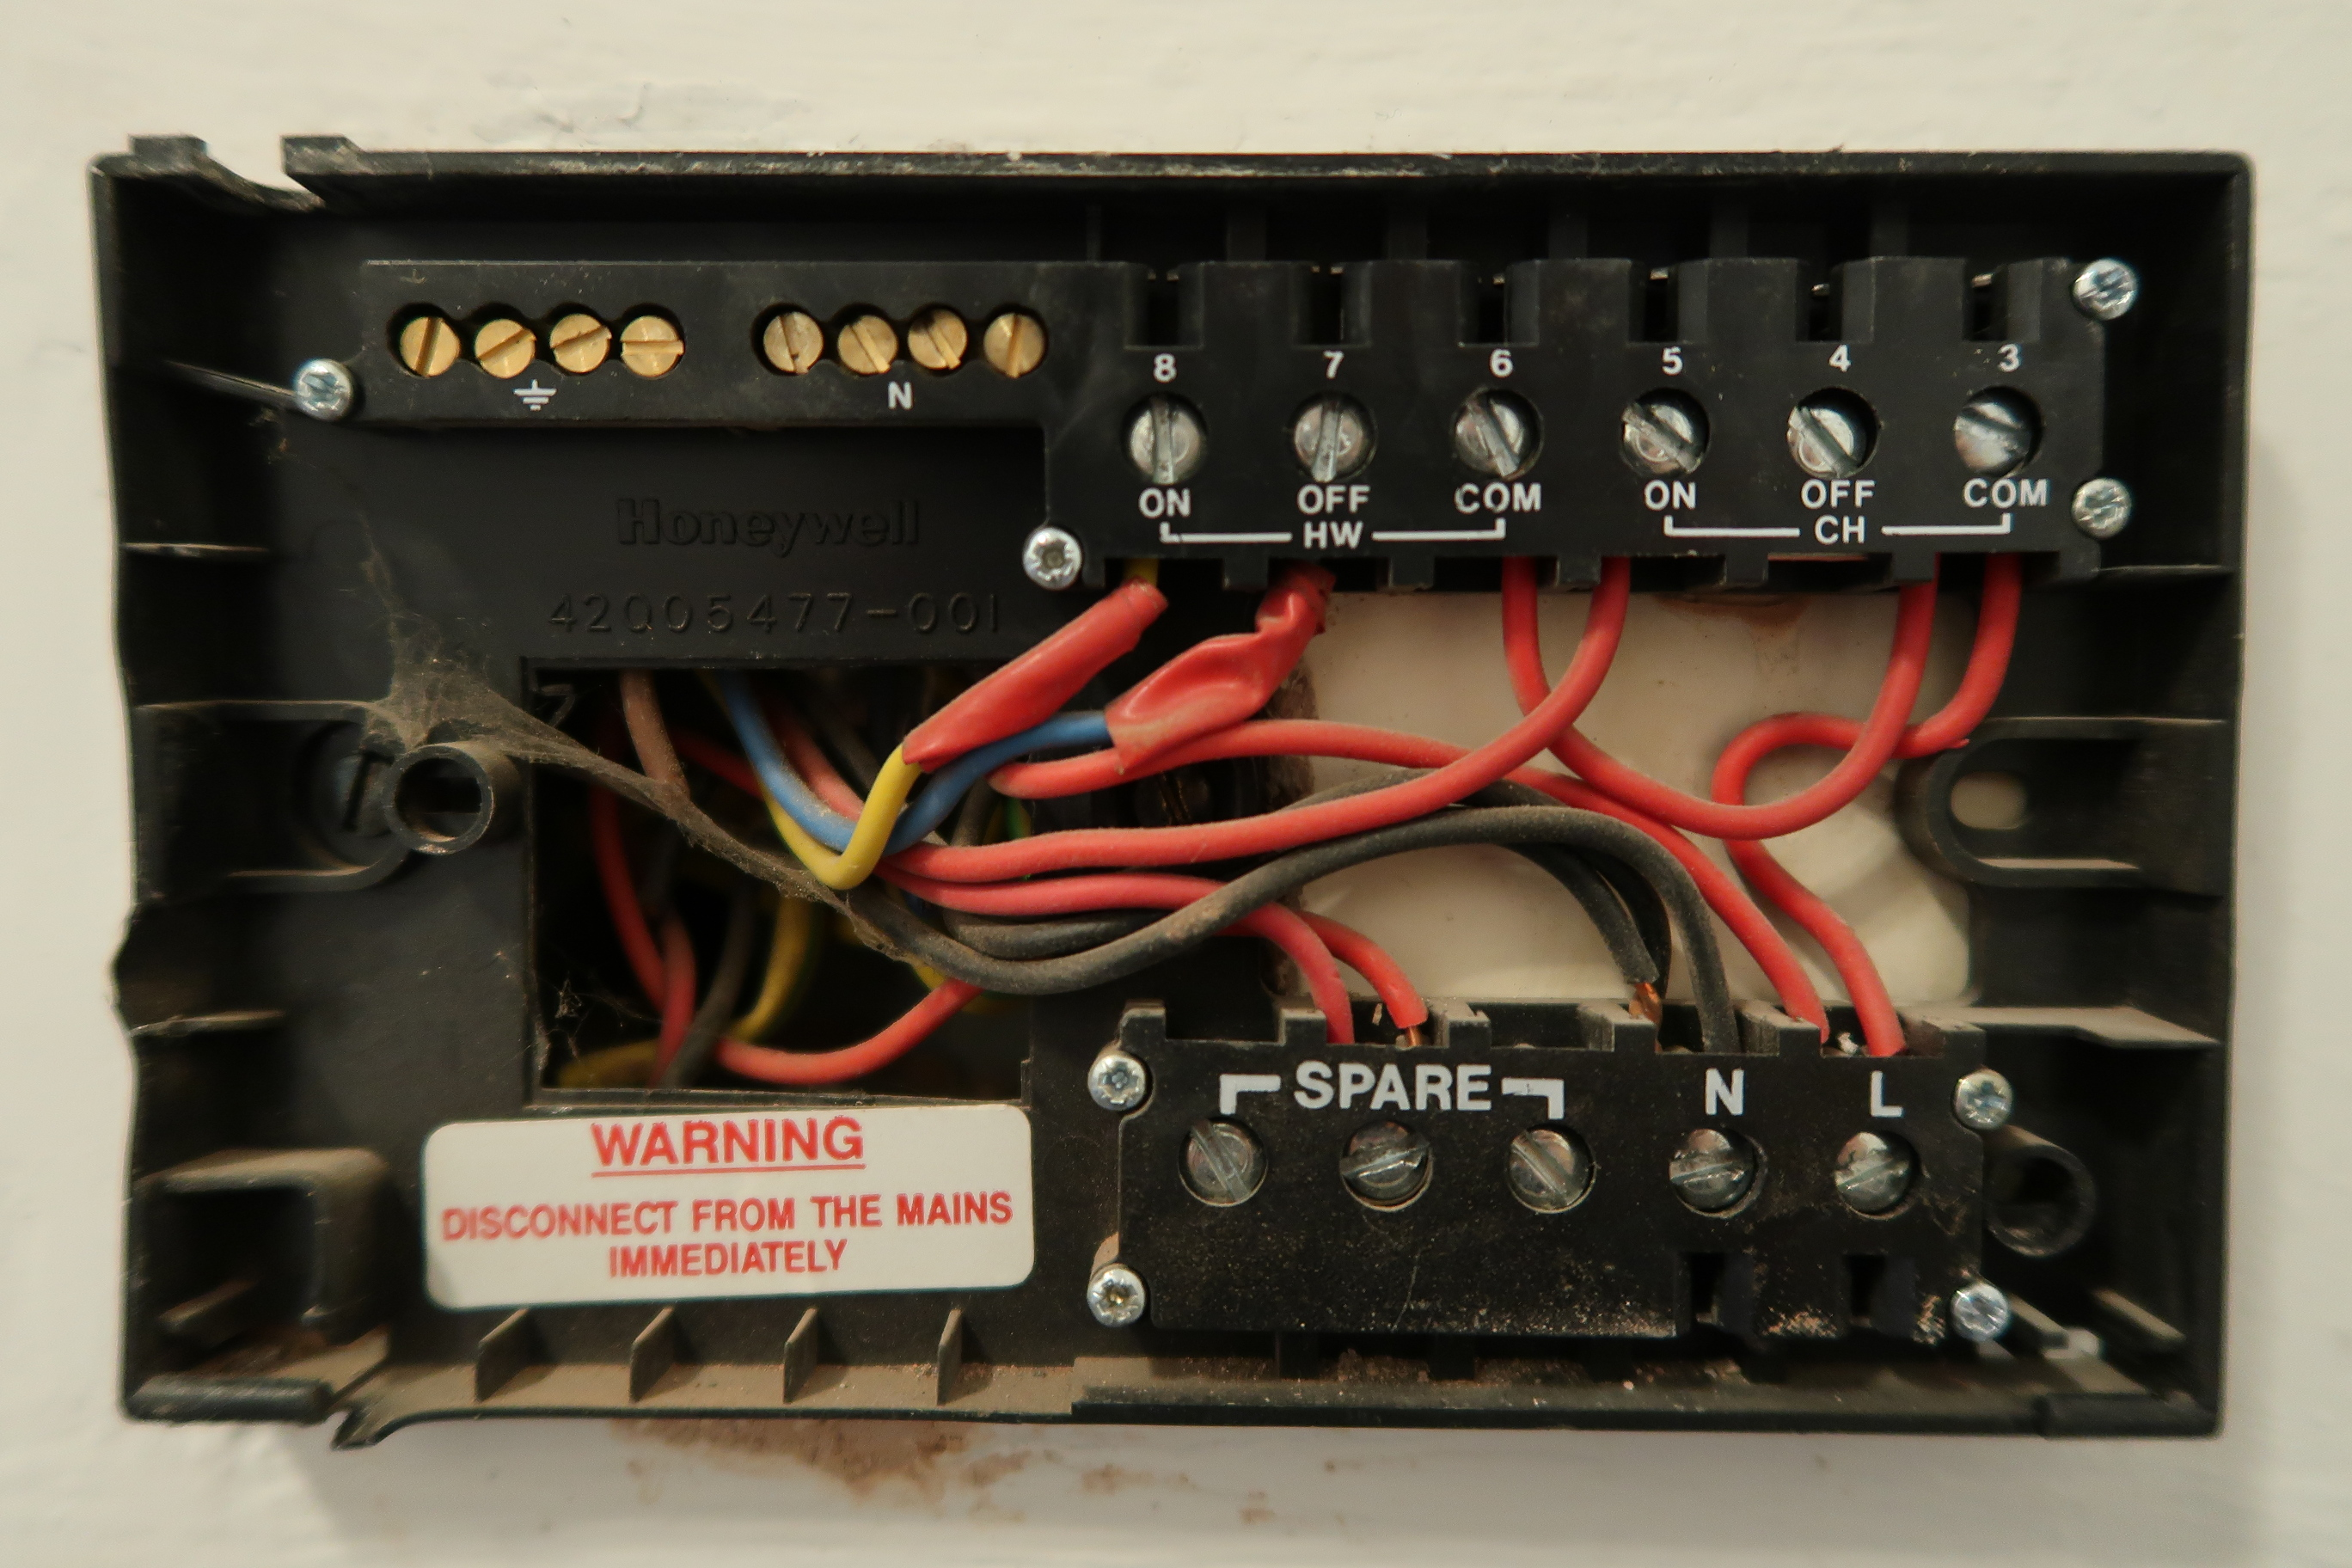 St7100 7 day 2 channel programmer honeywell home heating controls.